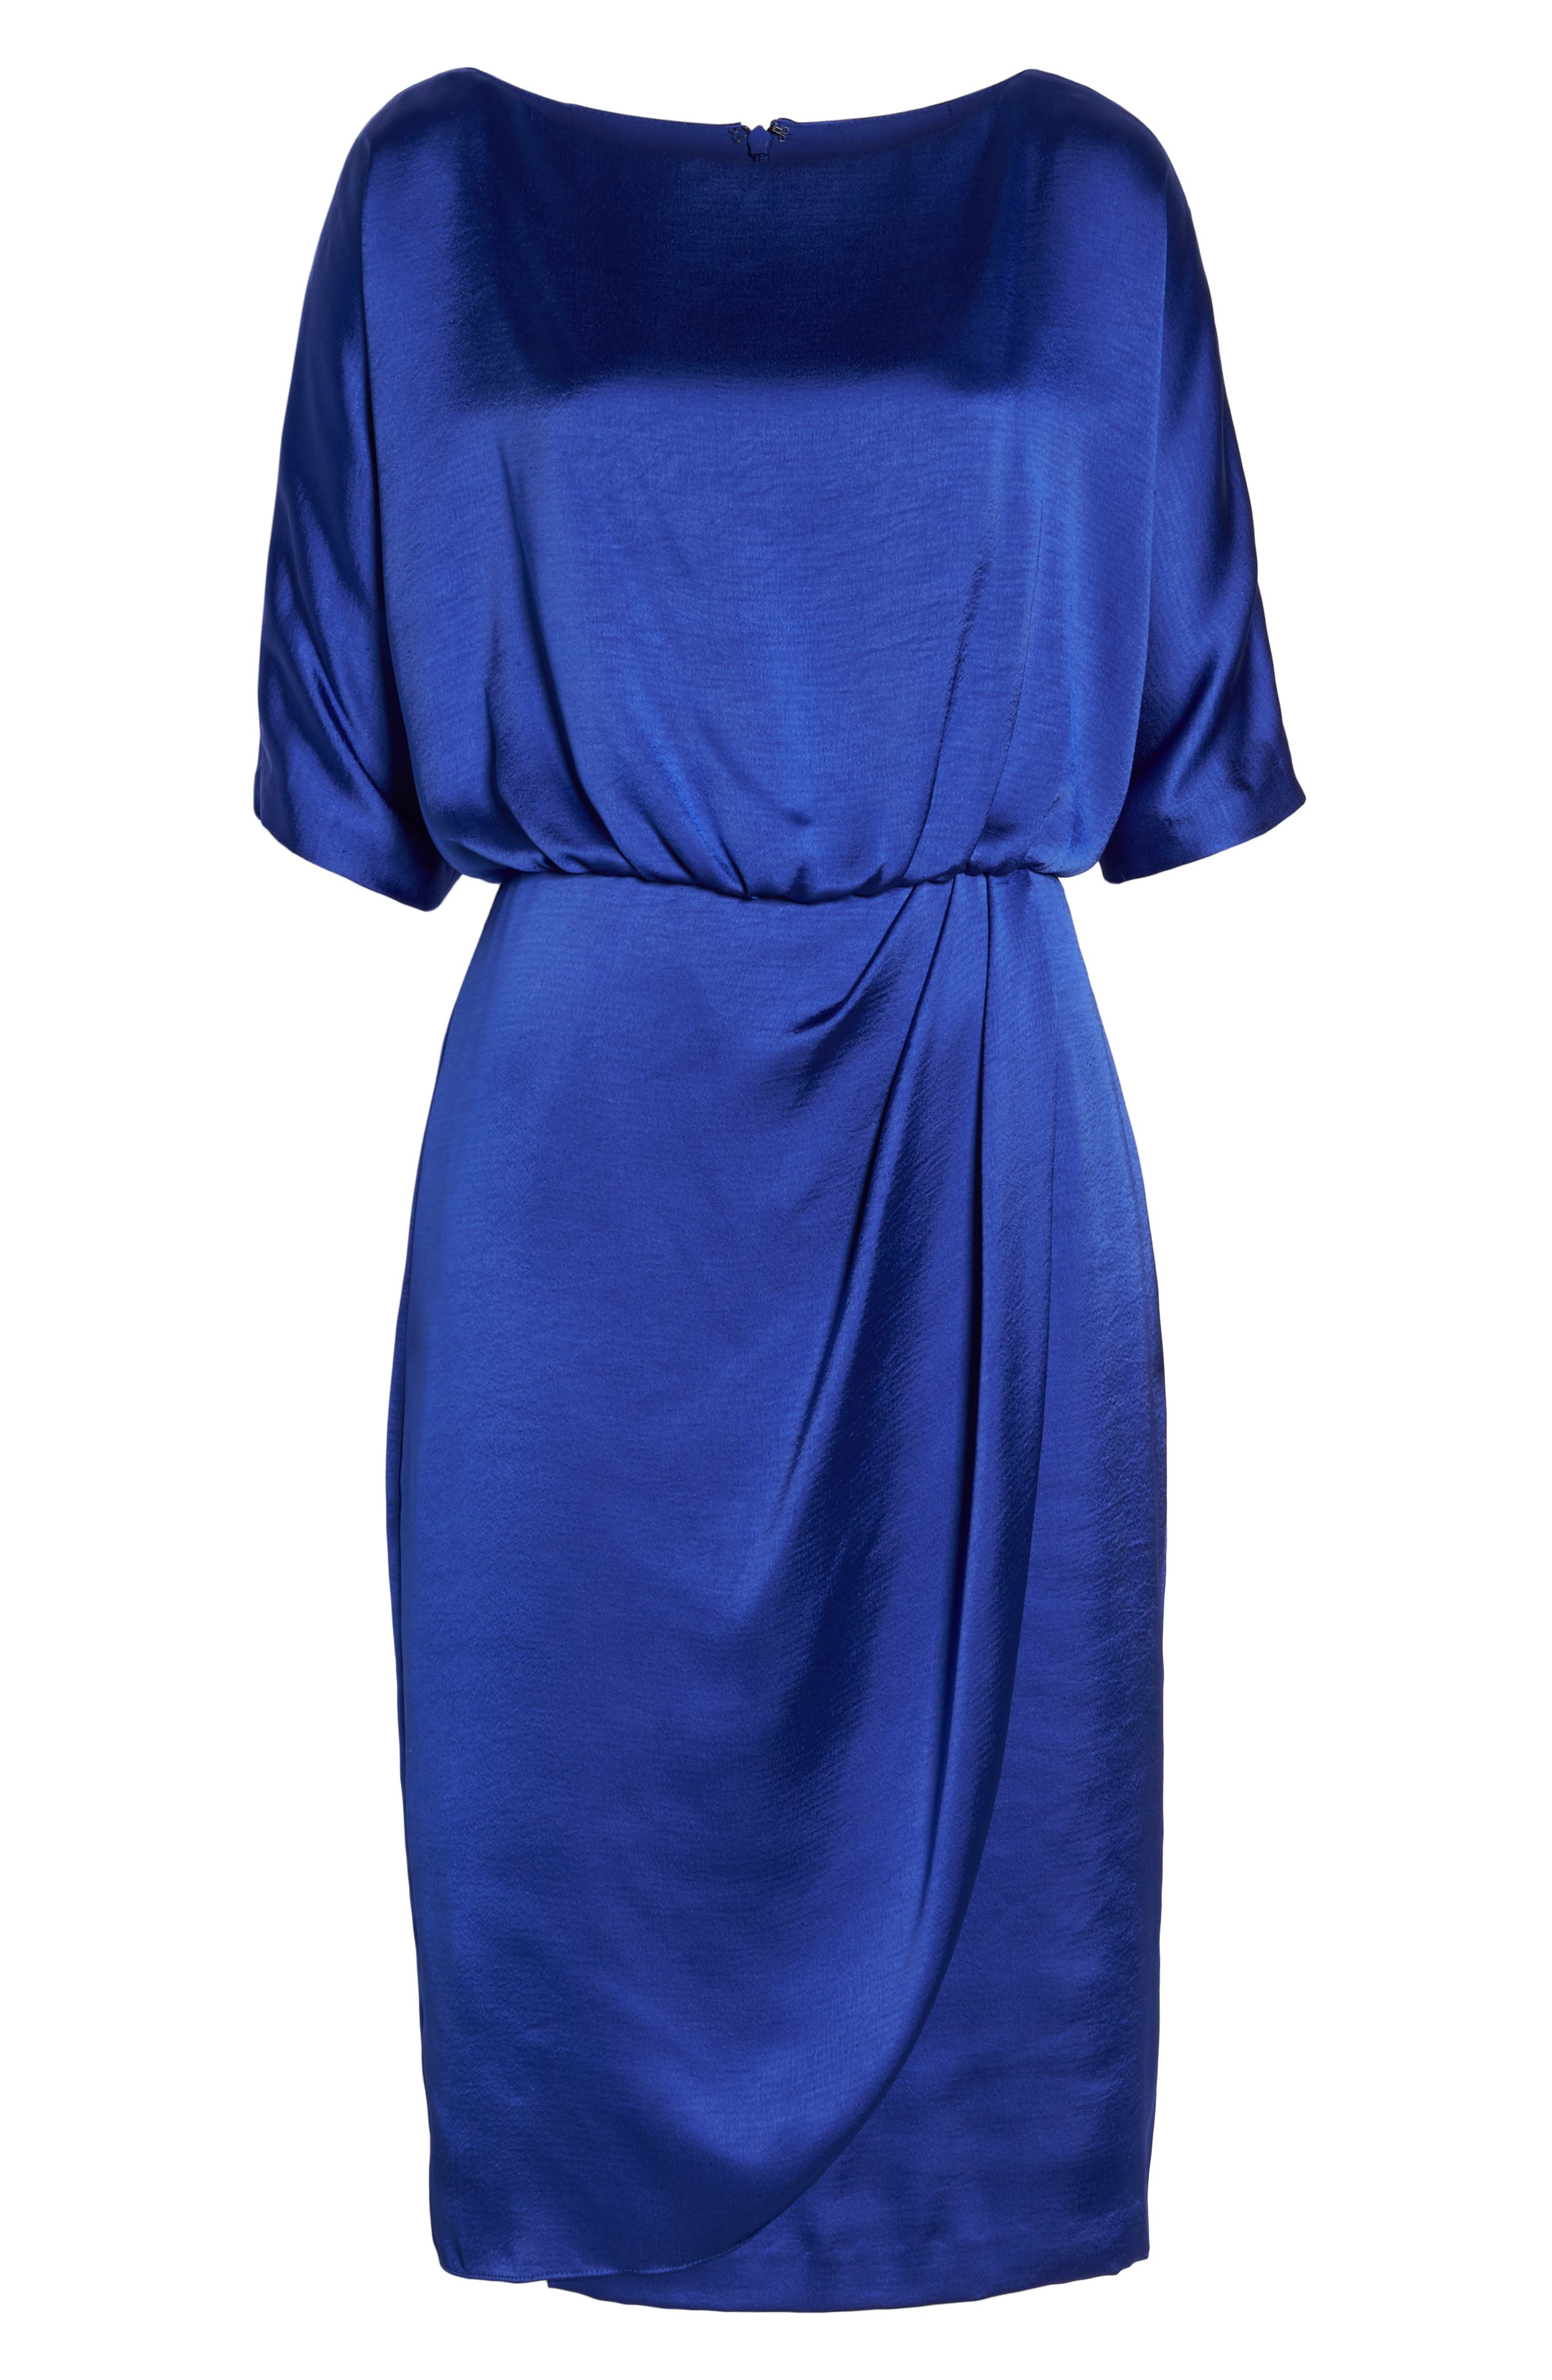 Draped Blouson Dress,                             Alternate thumbnail 7, color,                             EMPIRE BLUE